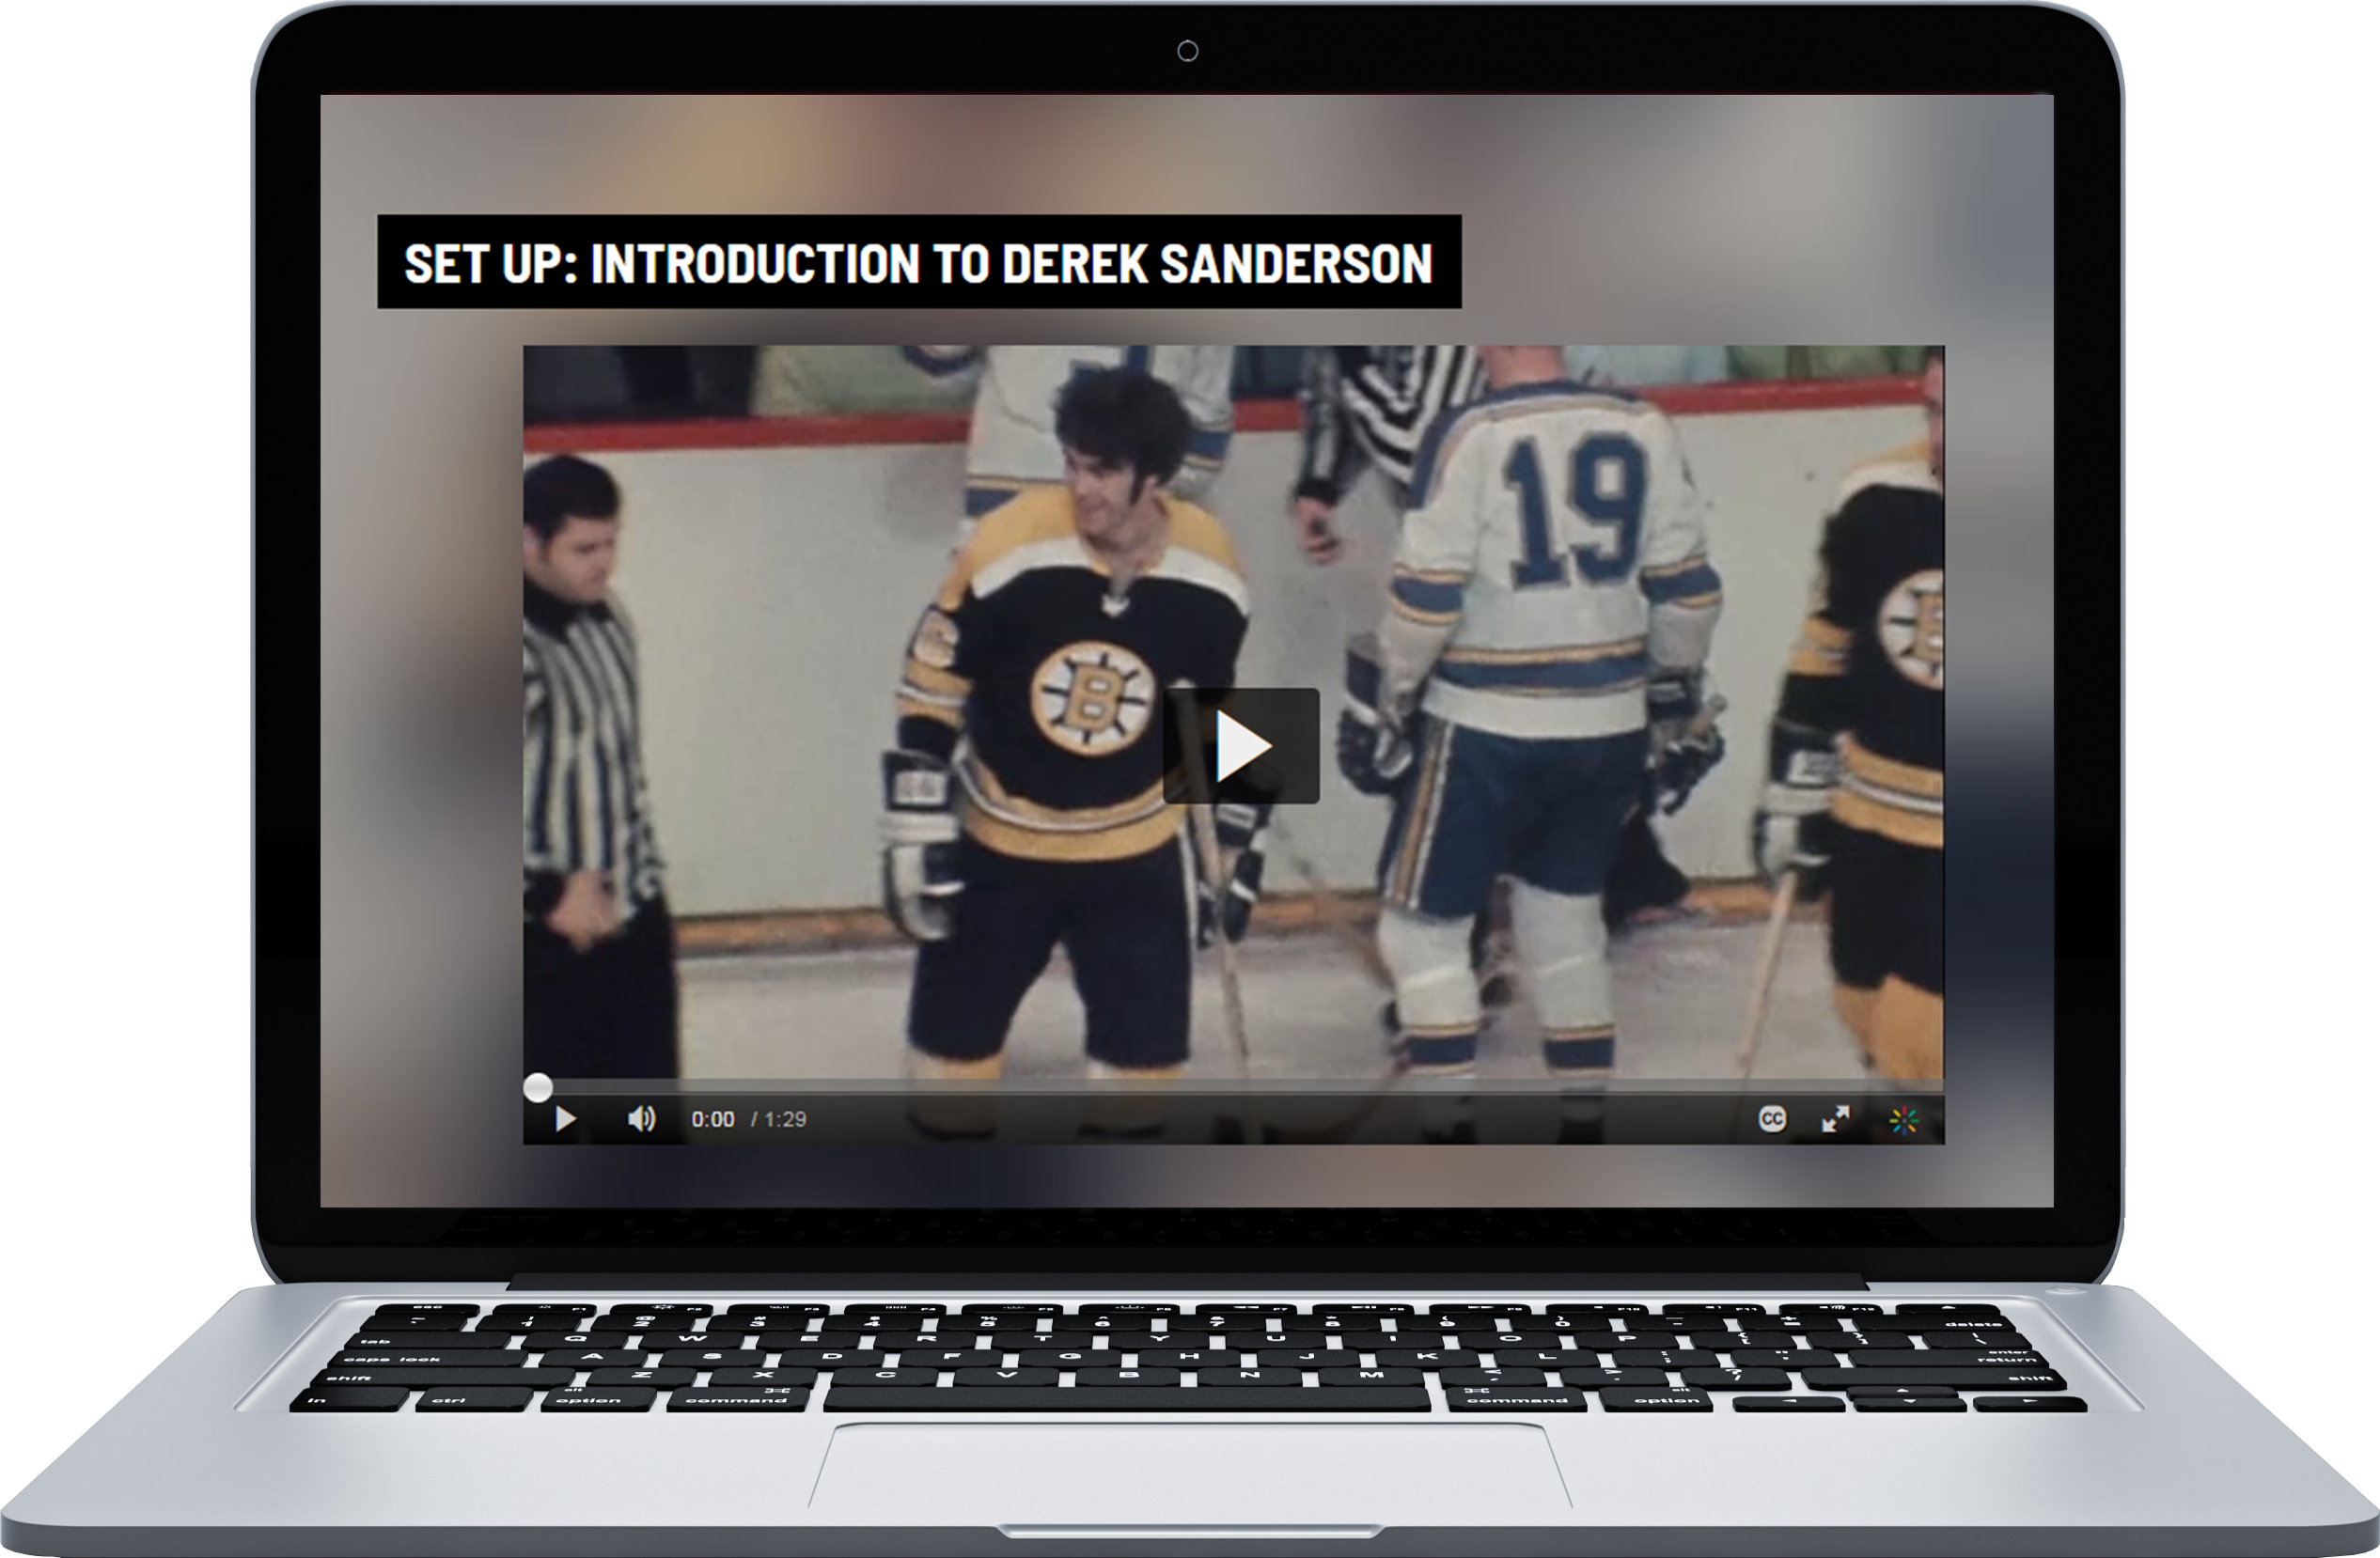 Derek Sanderson Video Introduction